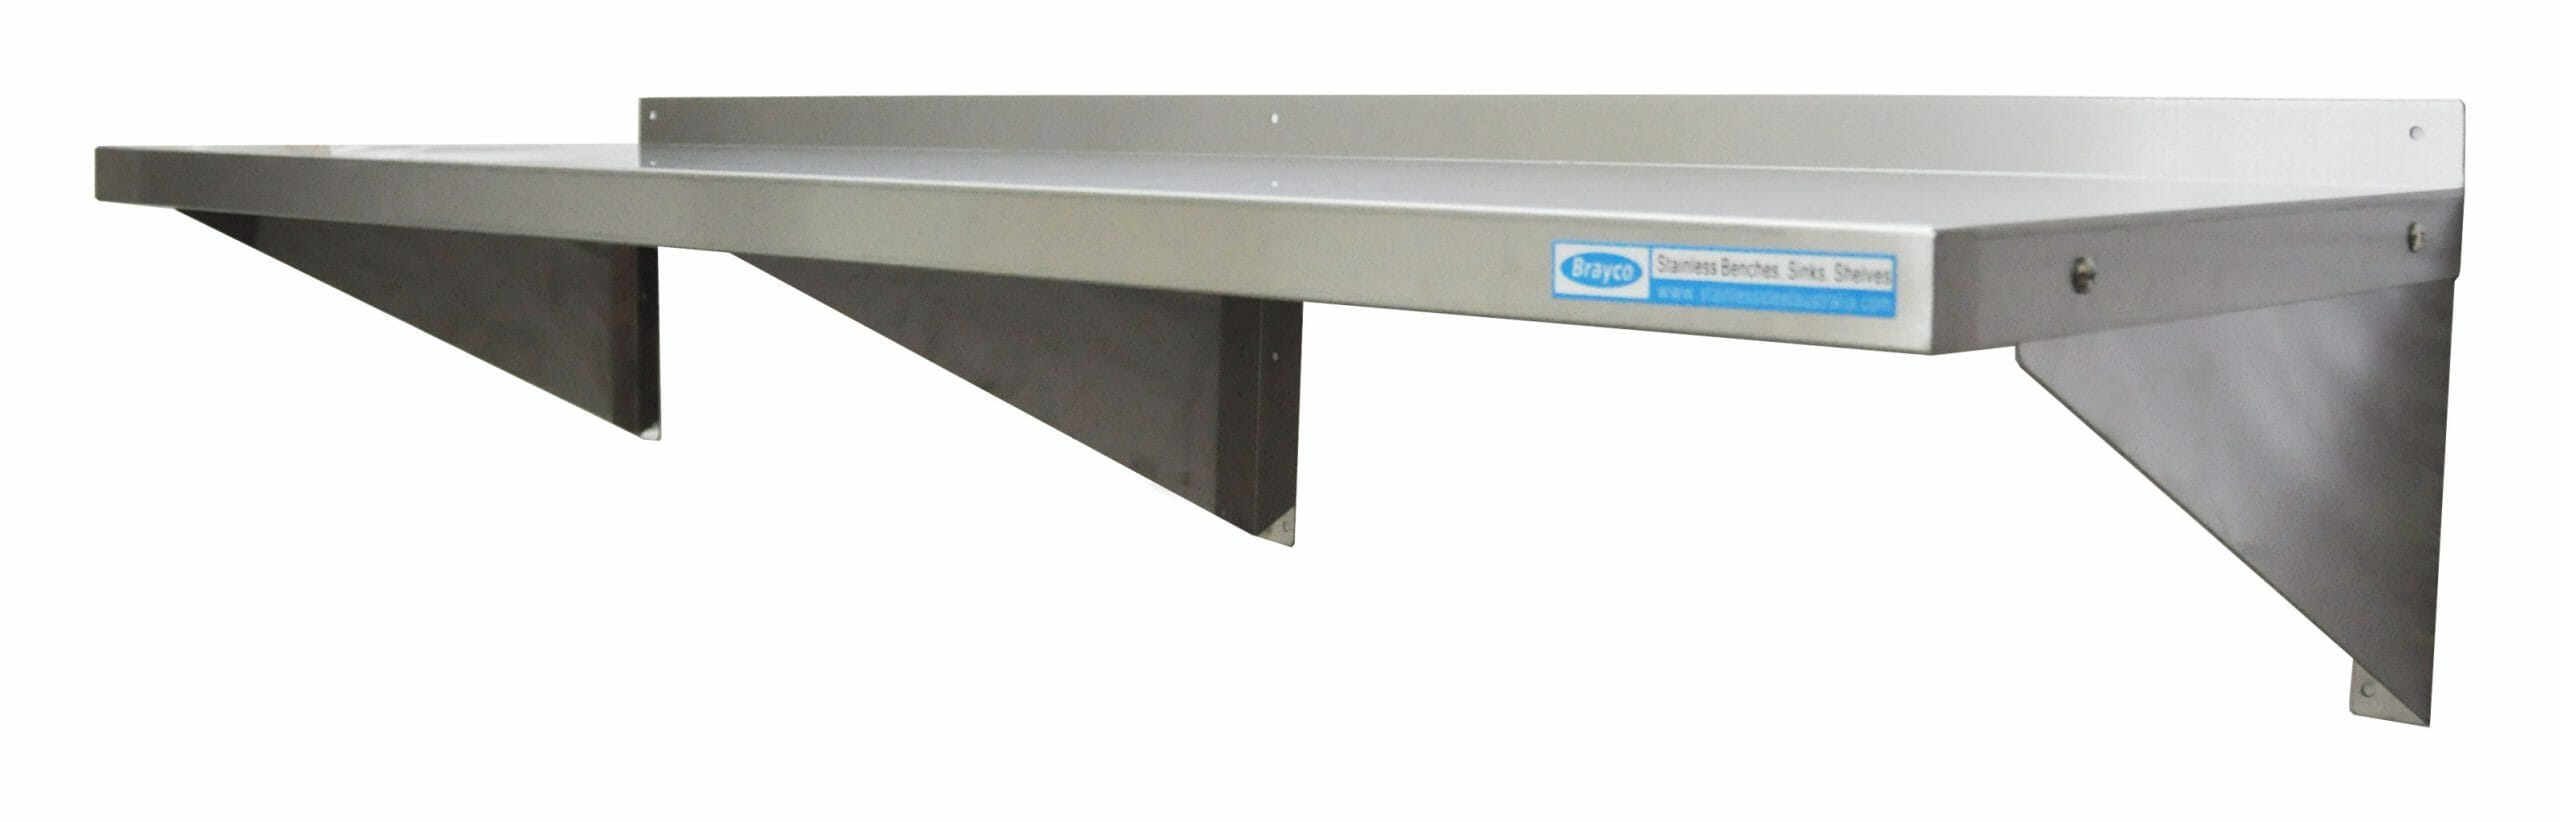 Stainless Steel Solid Wall Shelf, 1500 X 450mm deep